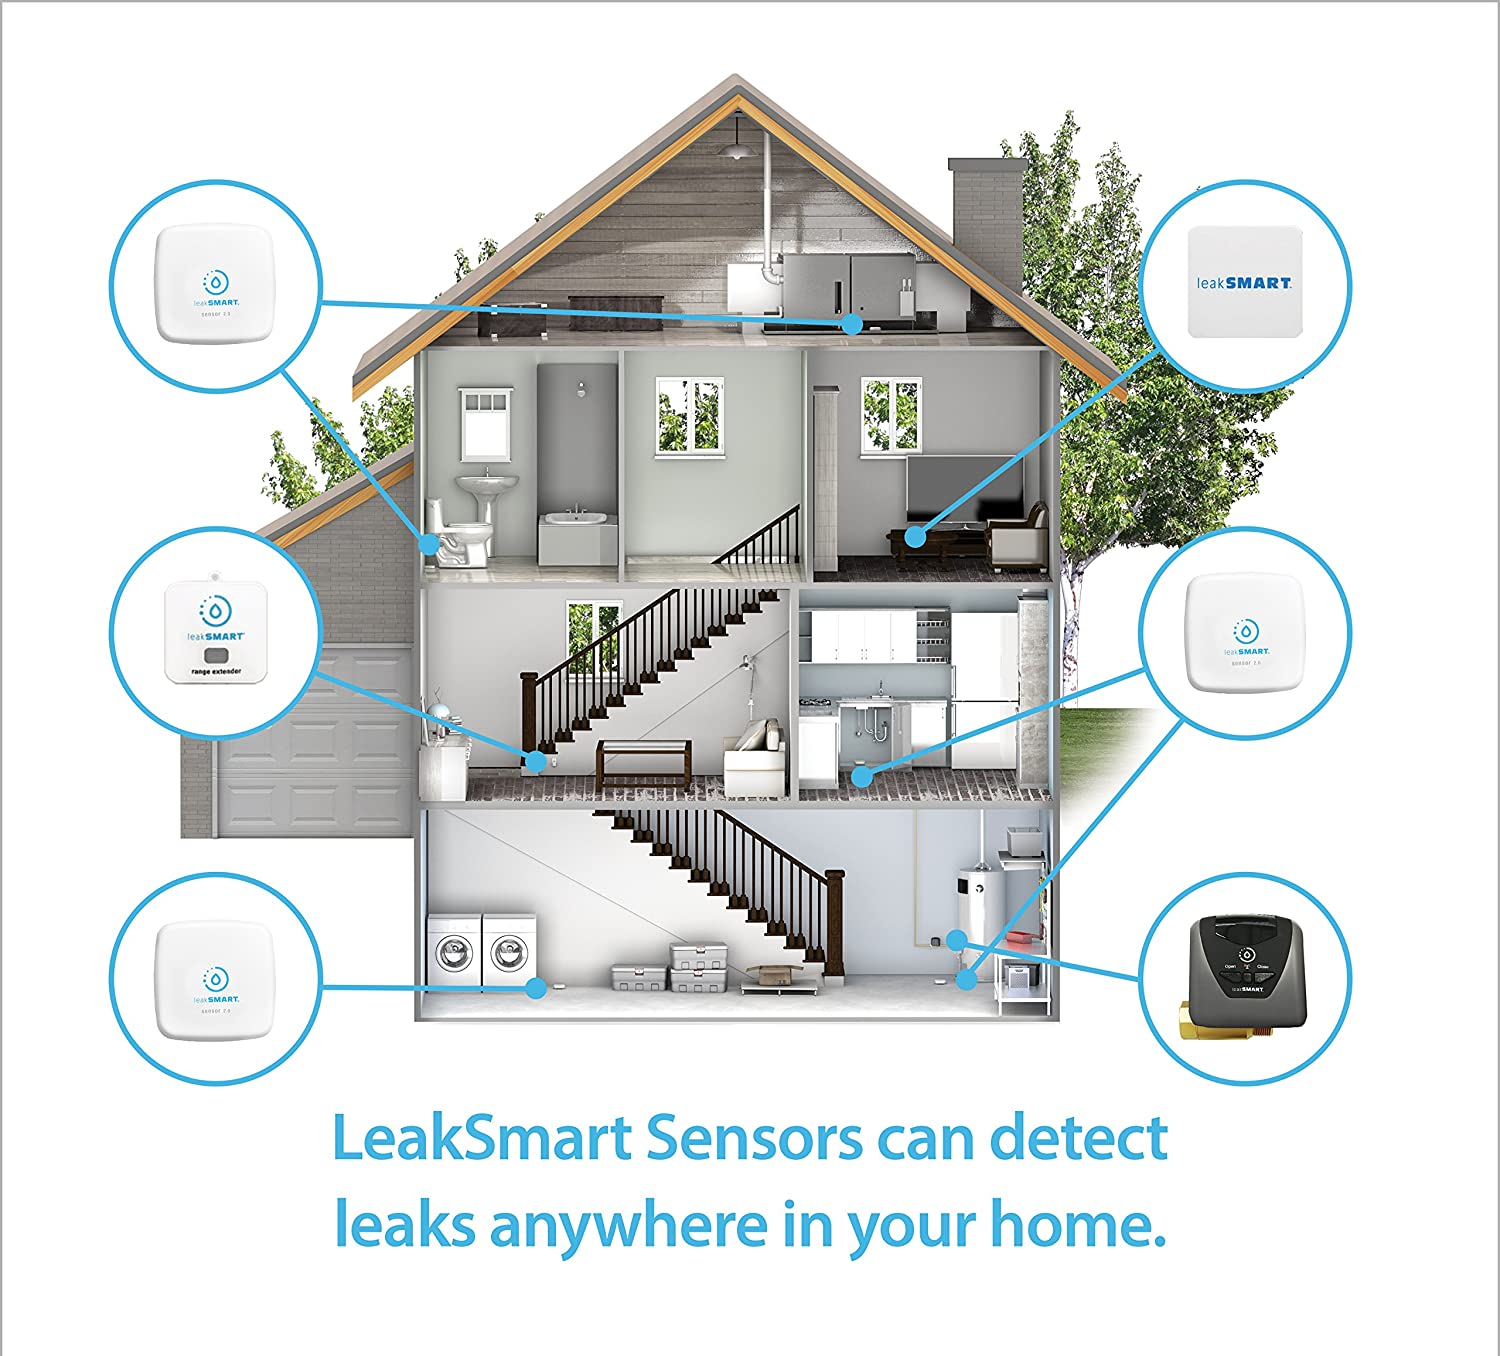 Water Leak Detection Starter Kit By Leaksmart Includes 1 Automatic Alarm Panel Wiring Diagram Shutoff Valve Sensor And Smart Hub